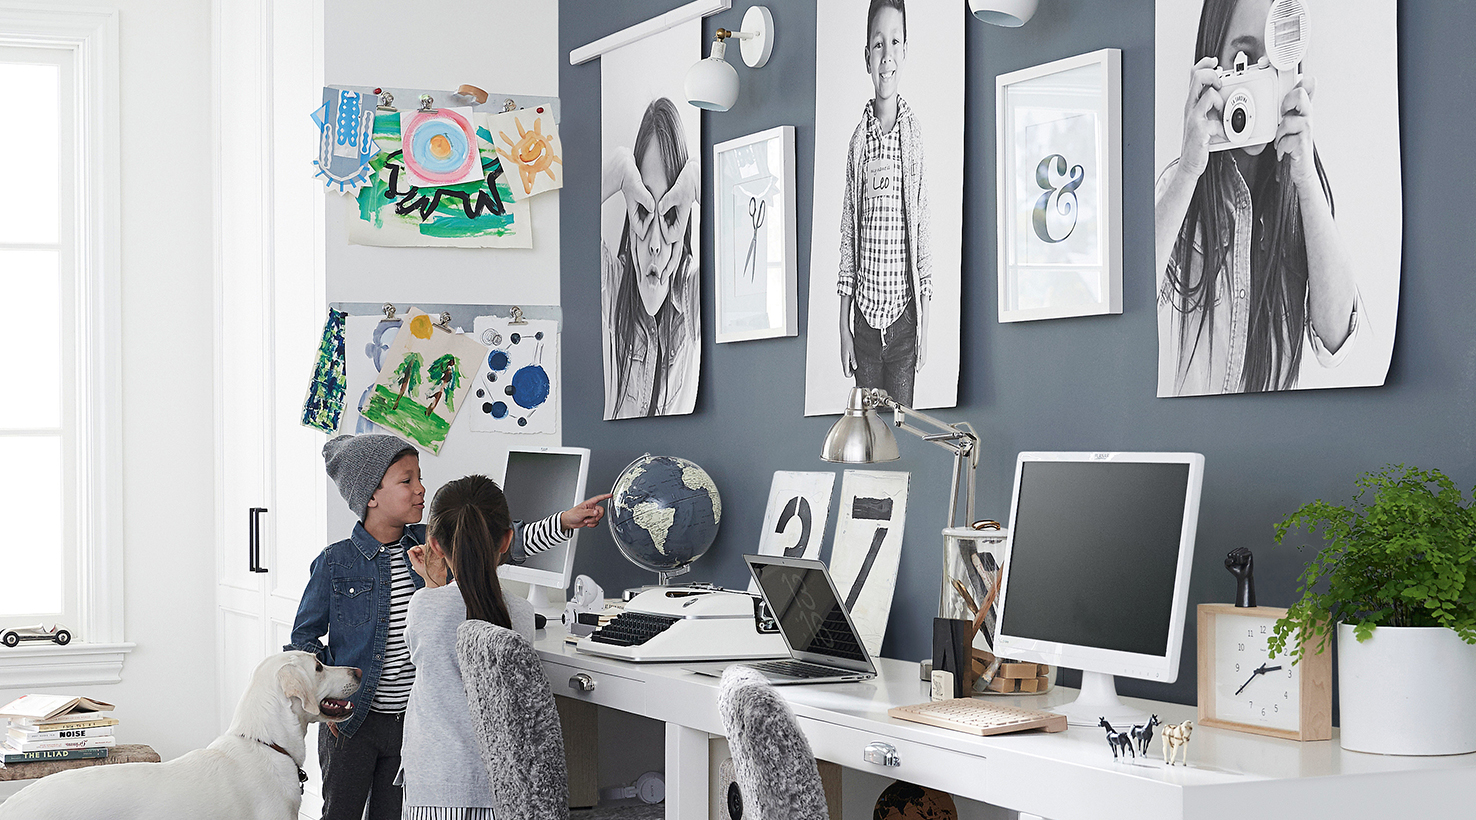 Children working on art projects in a home office